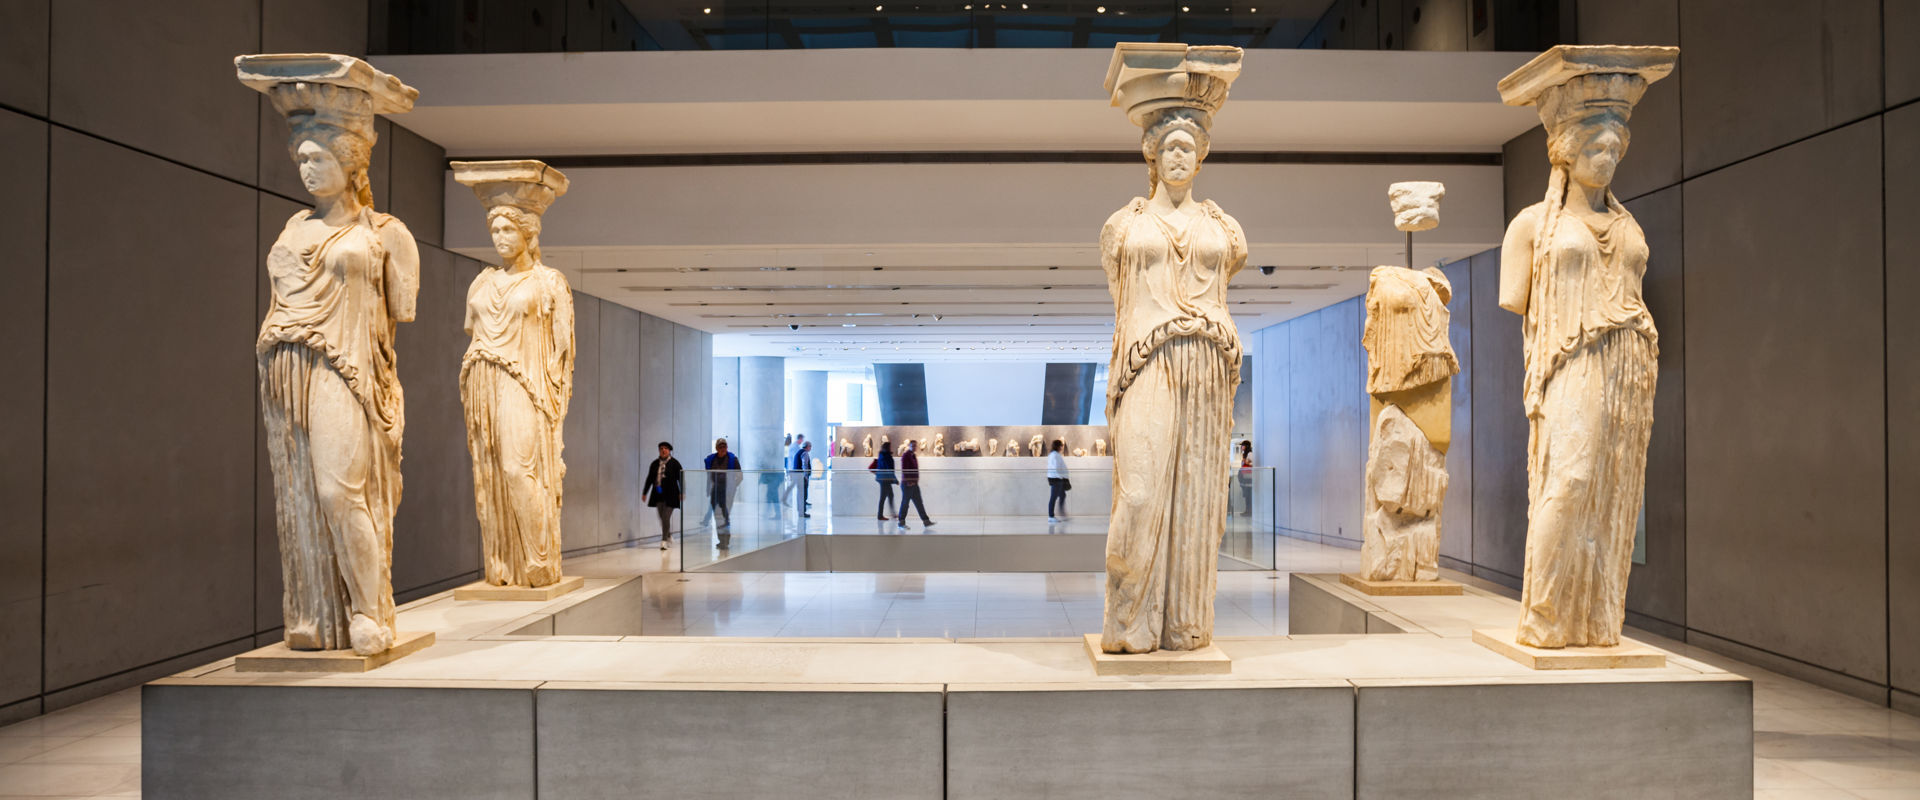 The Acropolis Museum is an archaeological museum focused on the findings of the archaeological site of the Acropolis of Athens in Greece.